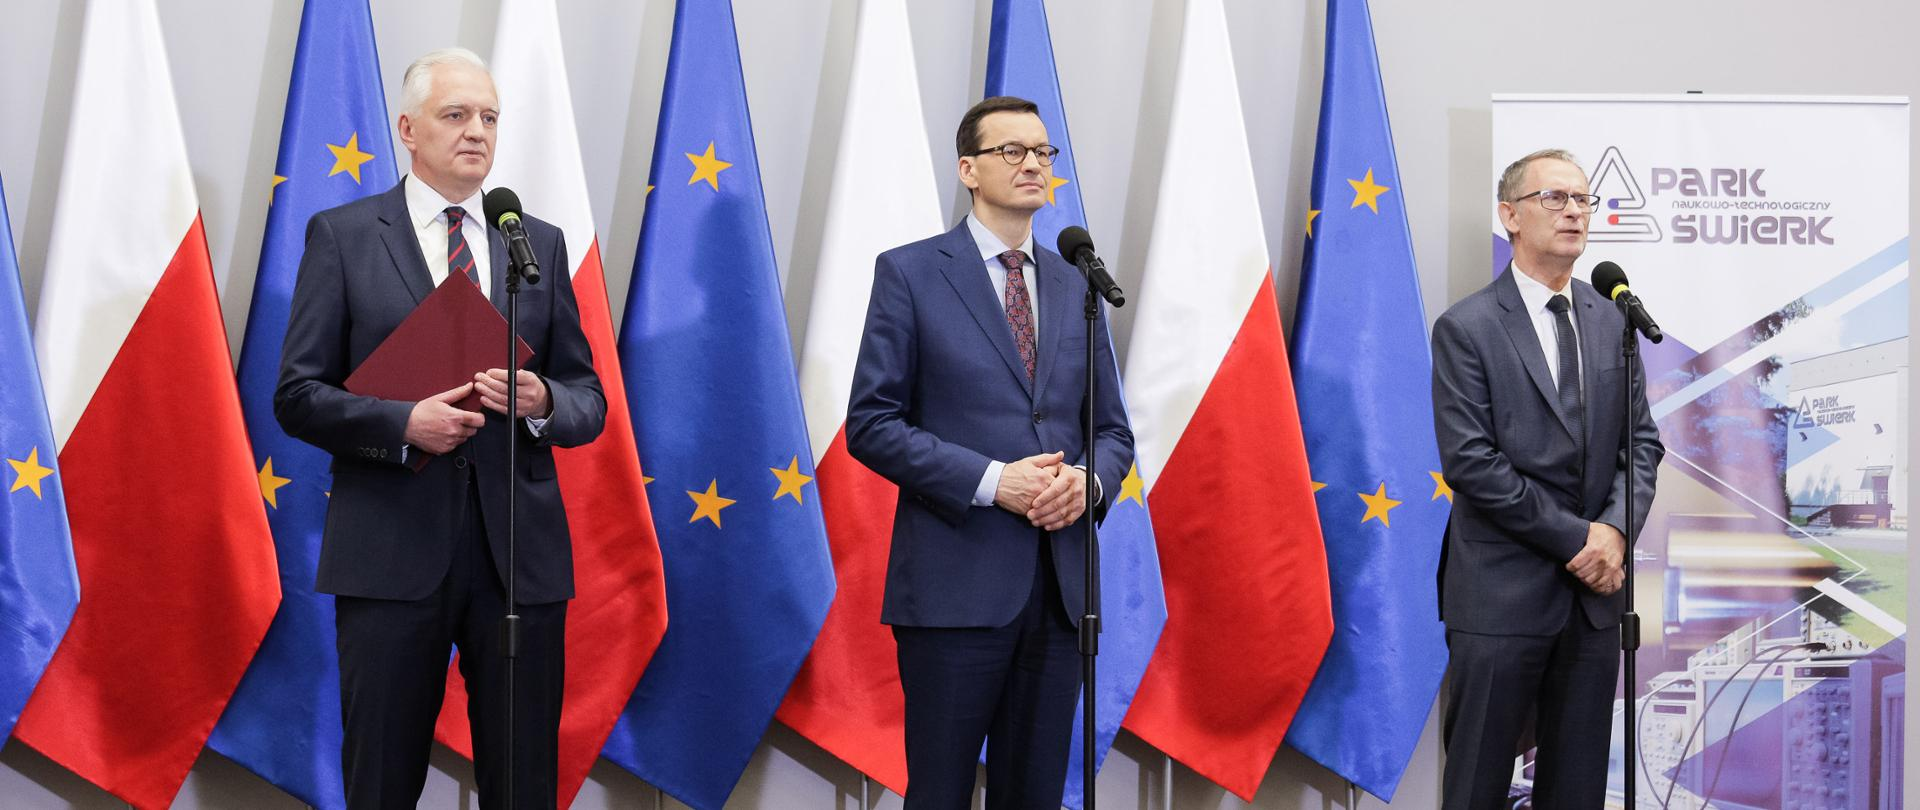 Prime Minister Mateusz Morawiecki, Minister of Science and Higher Education Jarosław Gowin and director of the National Centre for Research and Development Krzysztof Kurek during a press conference at the National Centre for Nuclear Research.